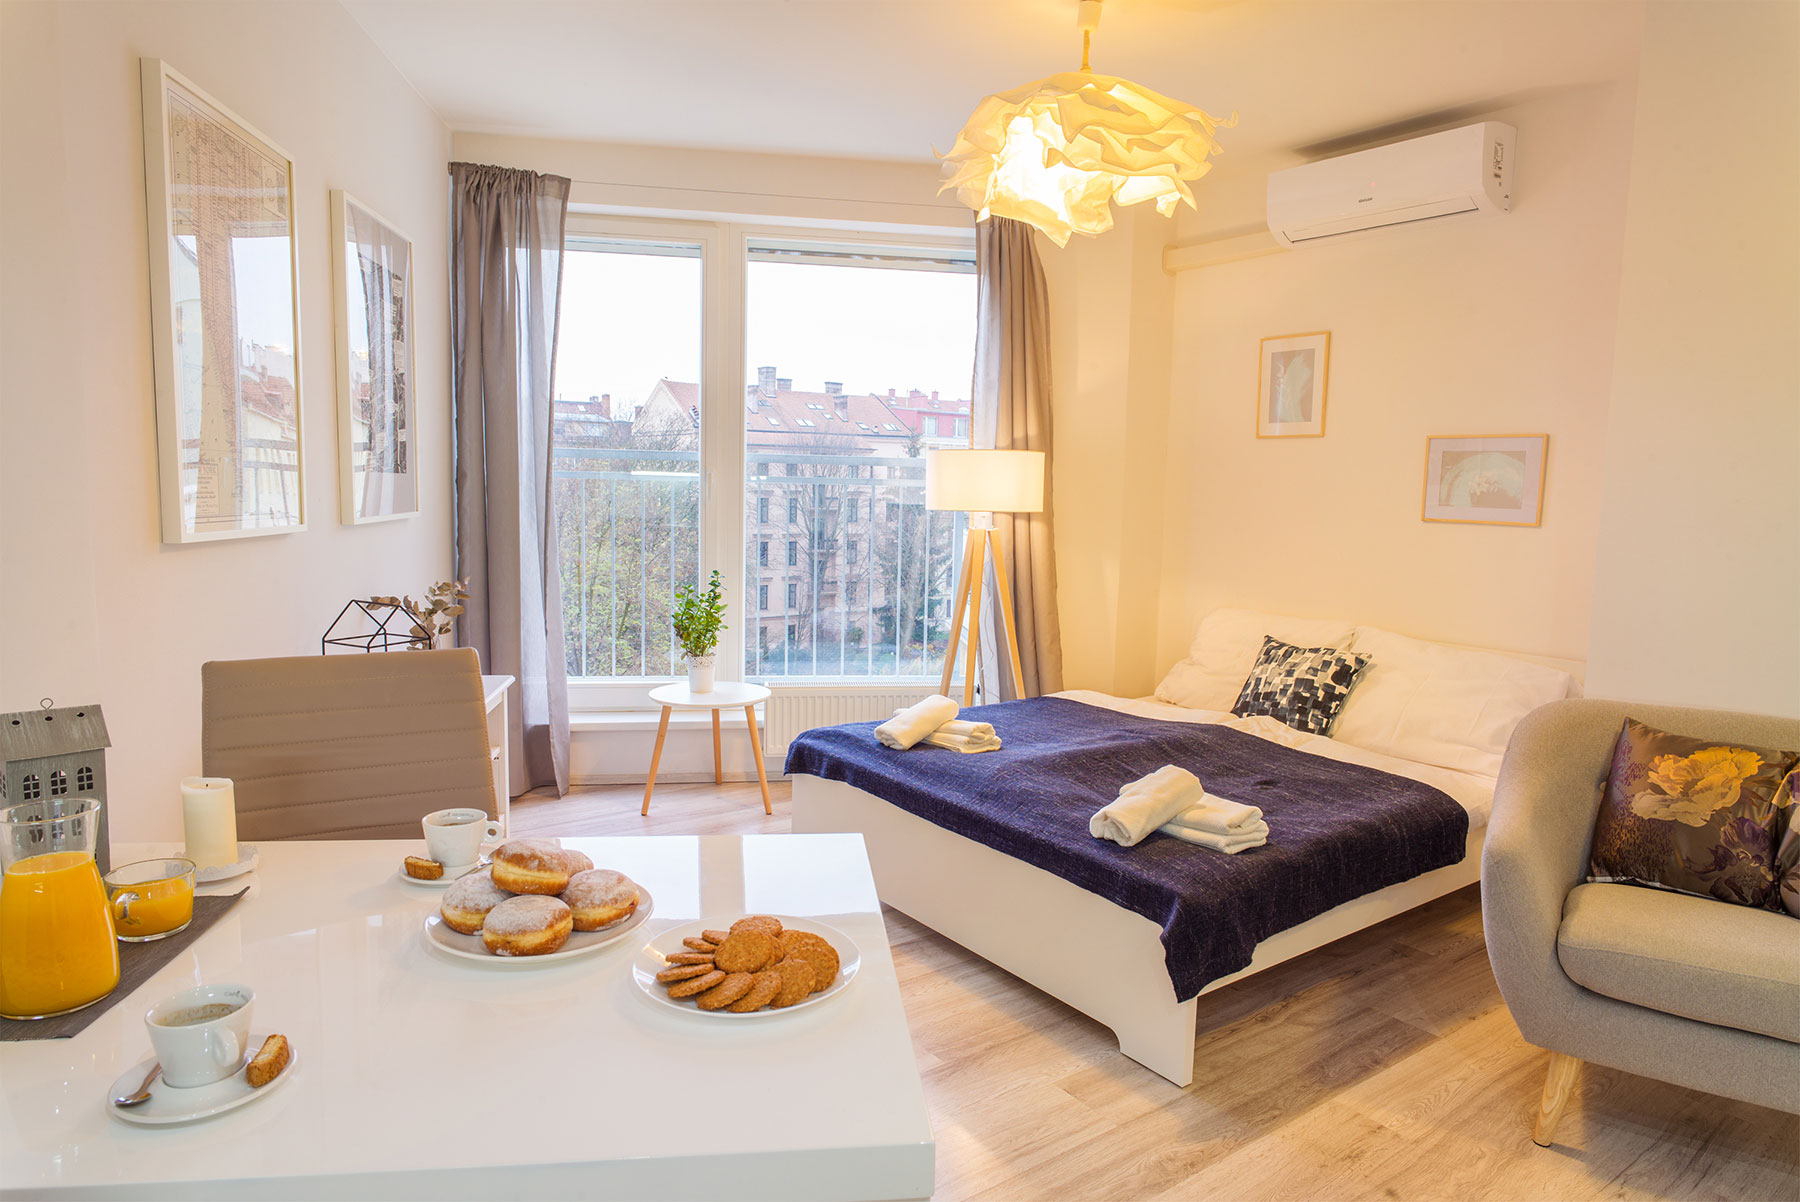 Central studio apartment Brno - studio arrangement